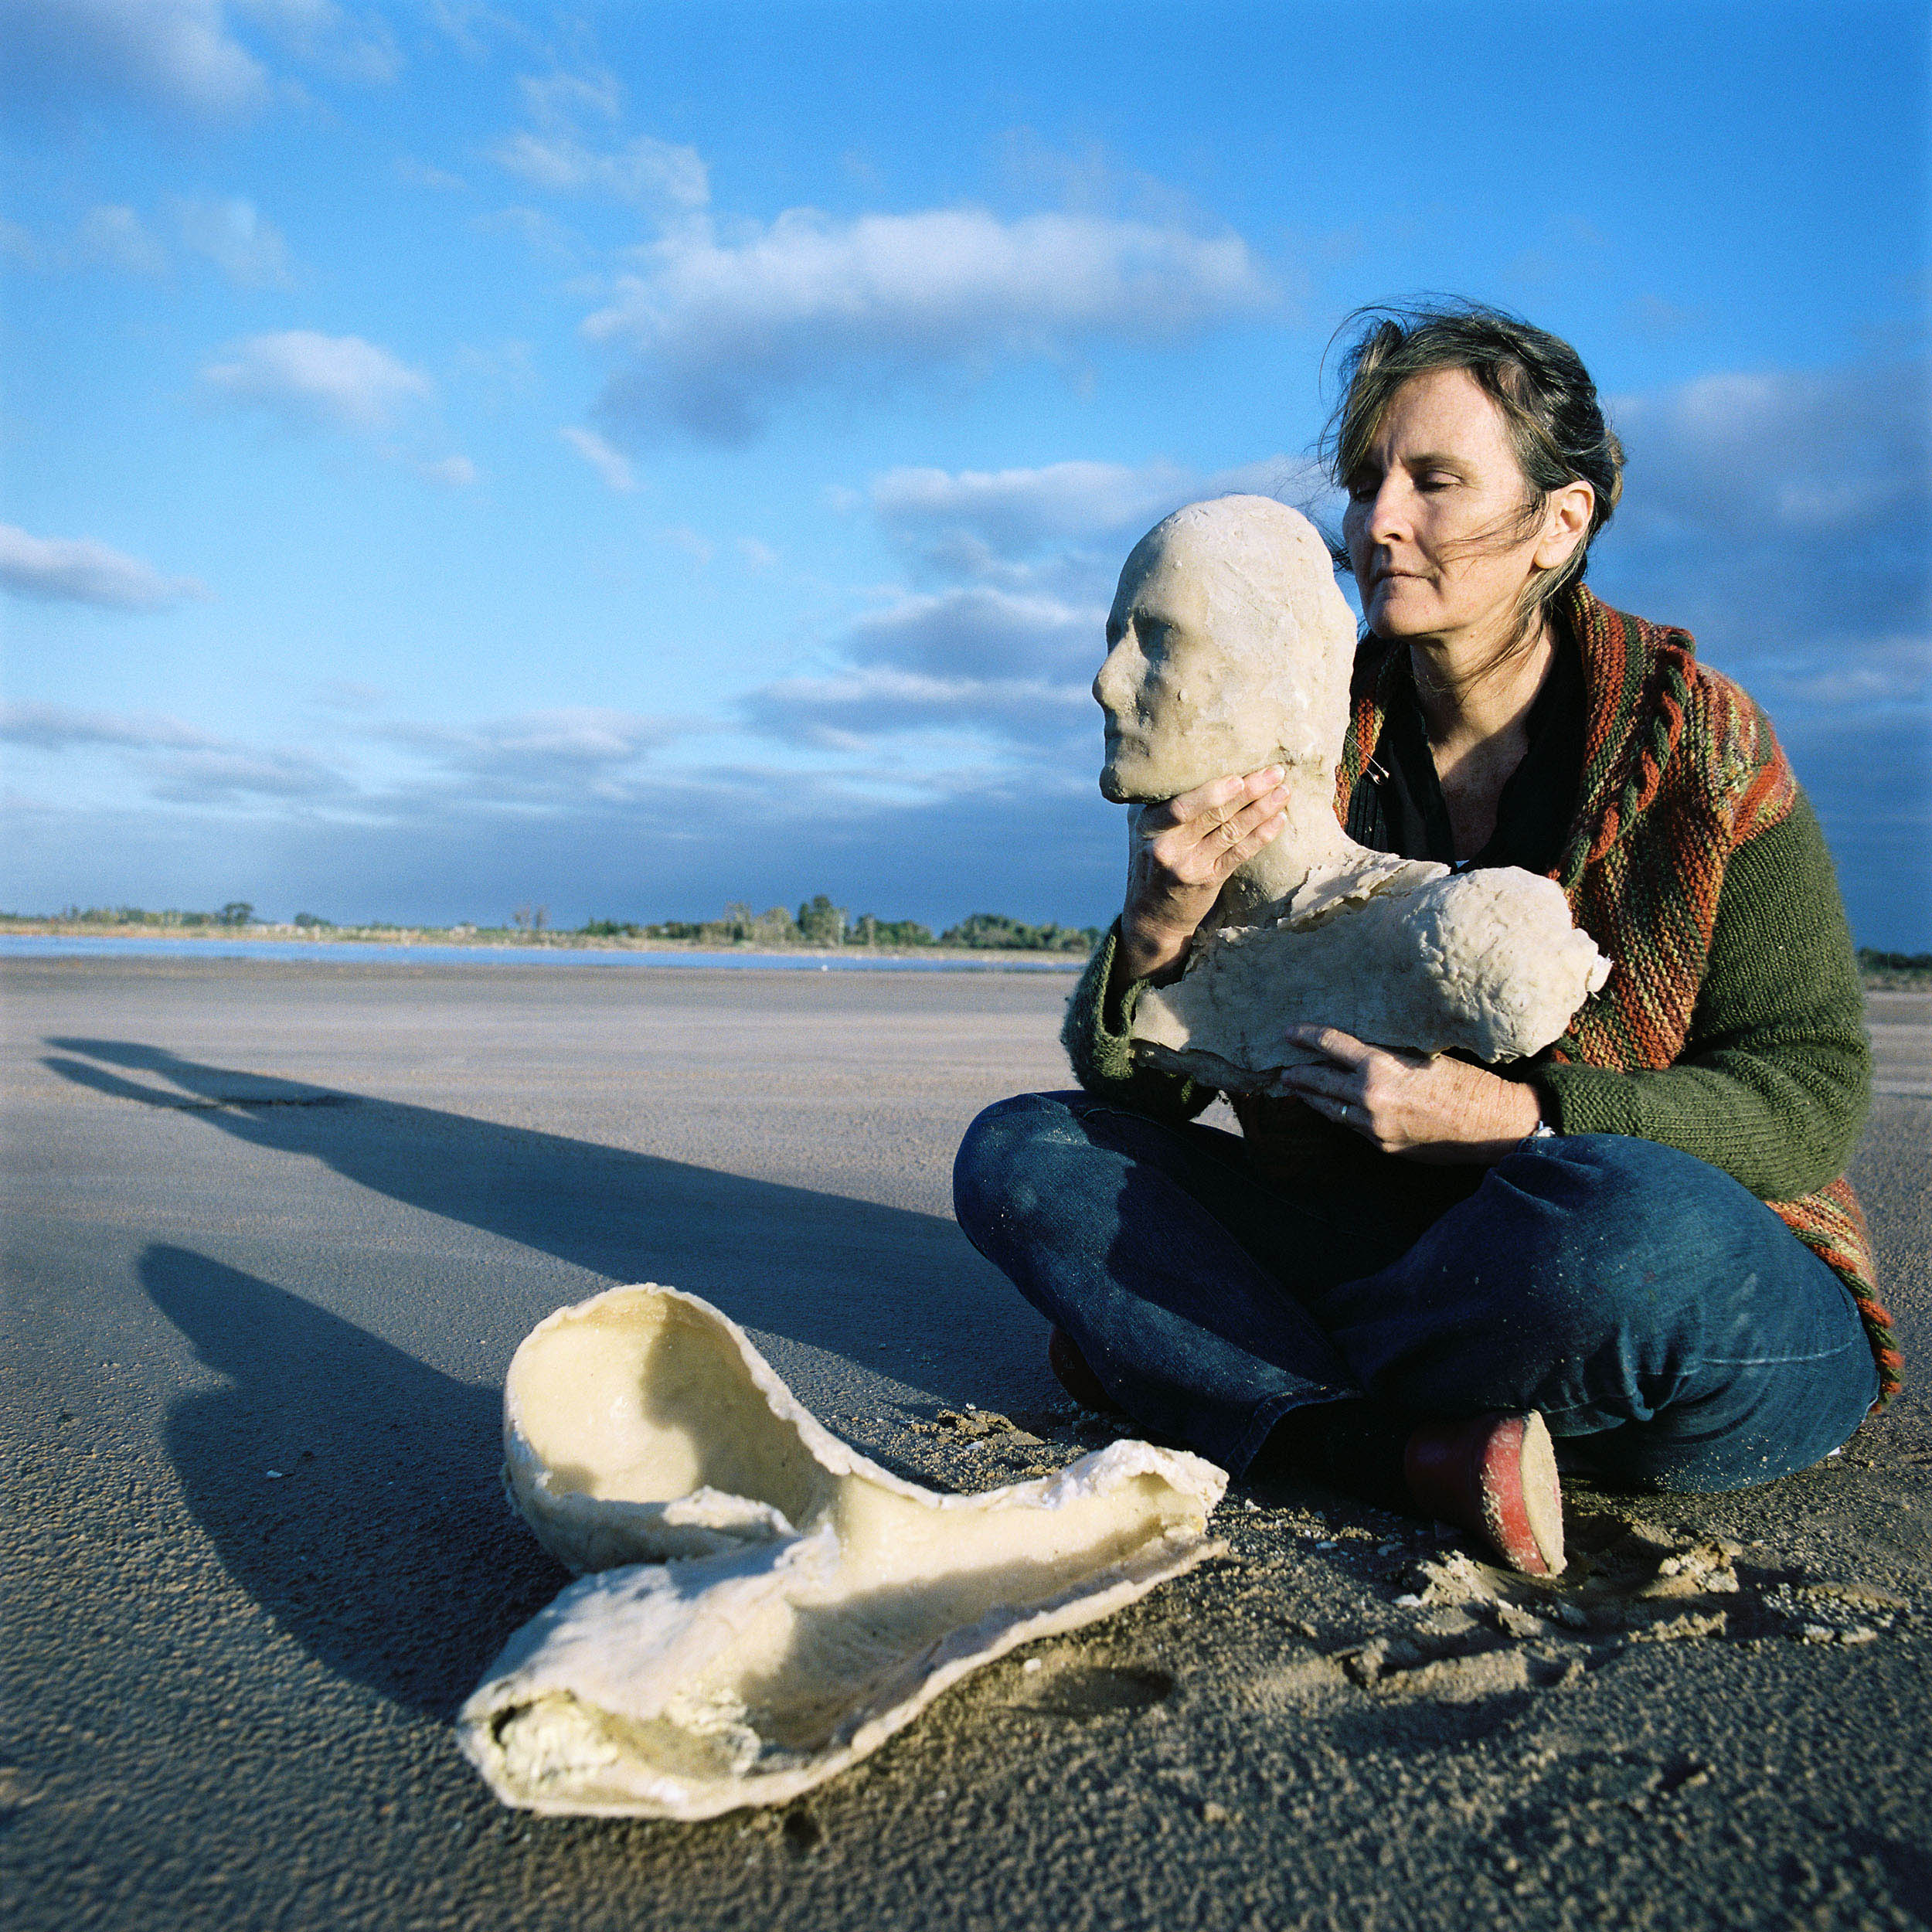 Artist Denise James at Lambert's Swamp, Merbein, VIC, 2010 with her artwork entitled 'The Dance,' a beeswax sculpture inspired by the dryness of the swamp and her experience of Parkinsons.